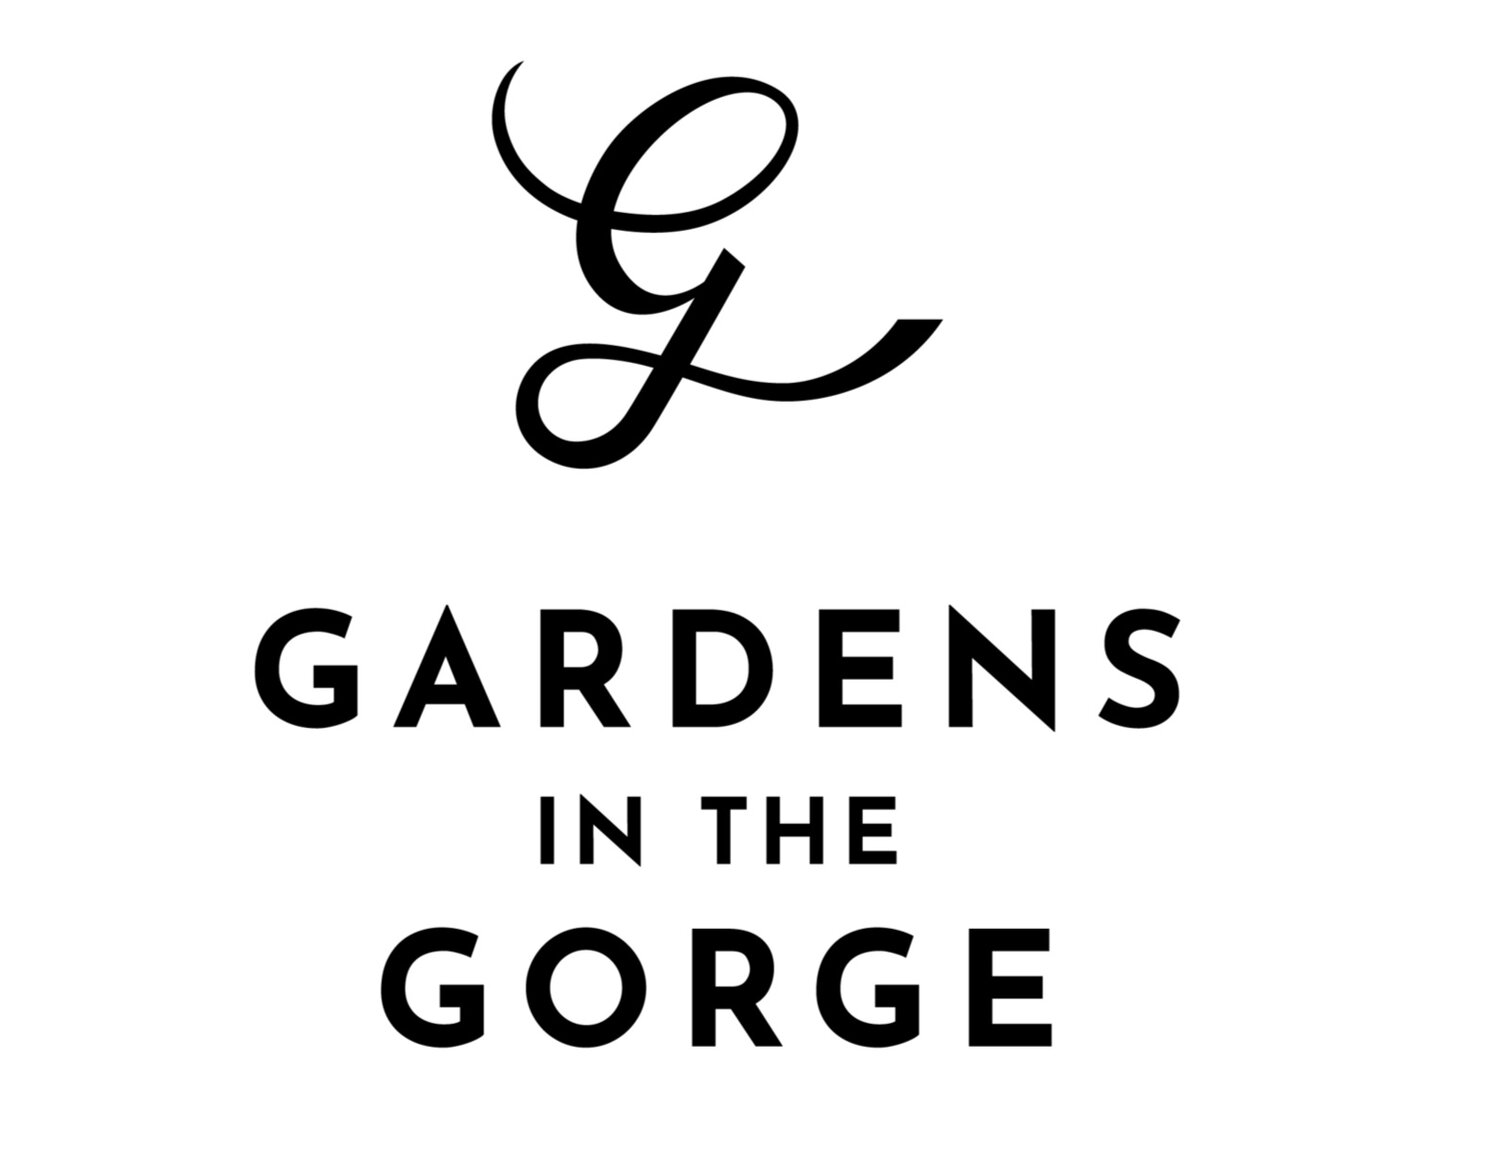 Gardens in the Gorge